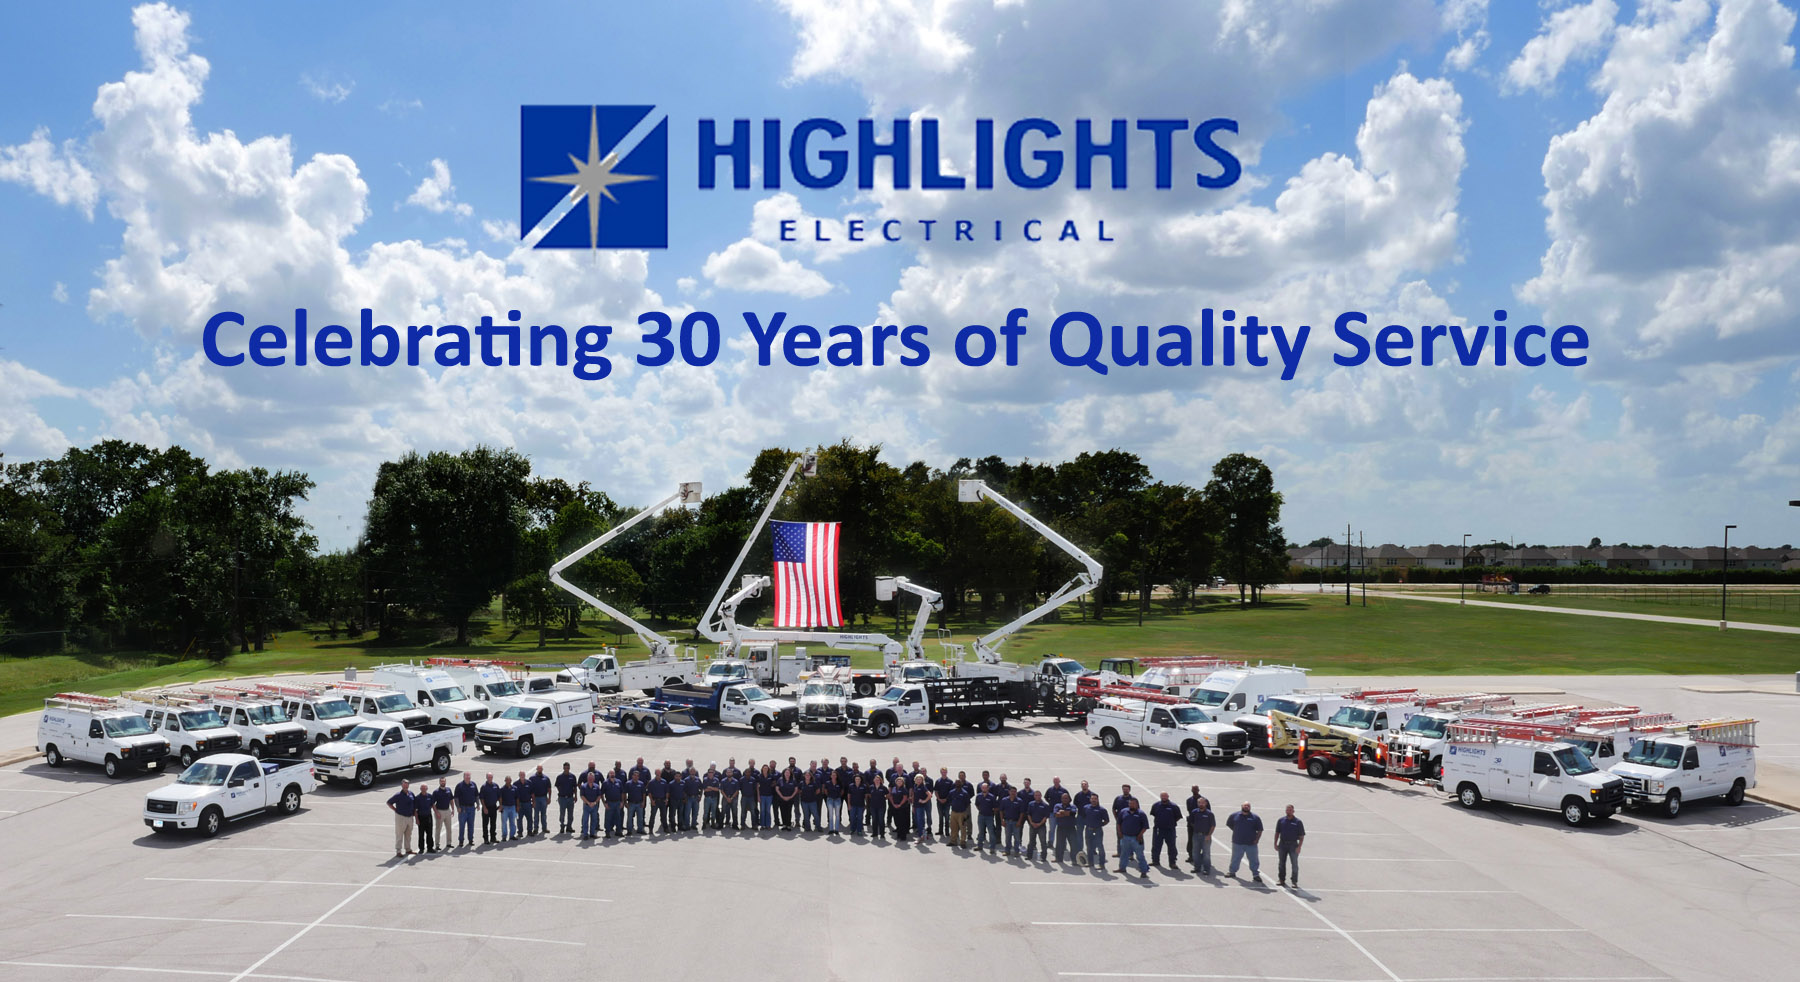 Houston electrical contracting is offered at Highlights Electrical!